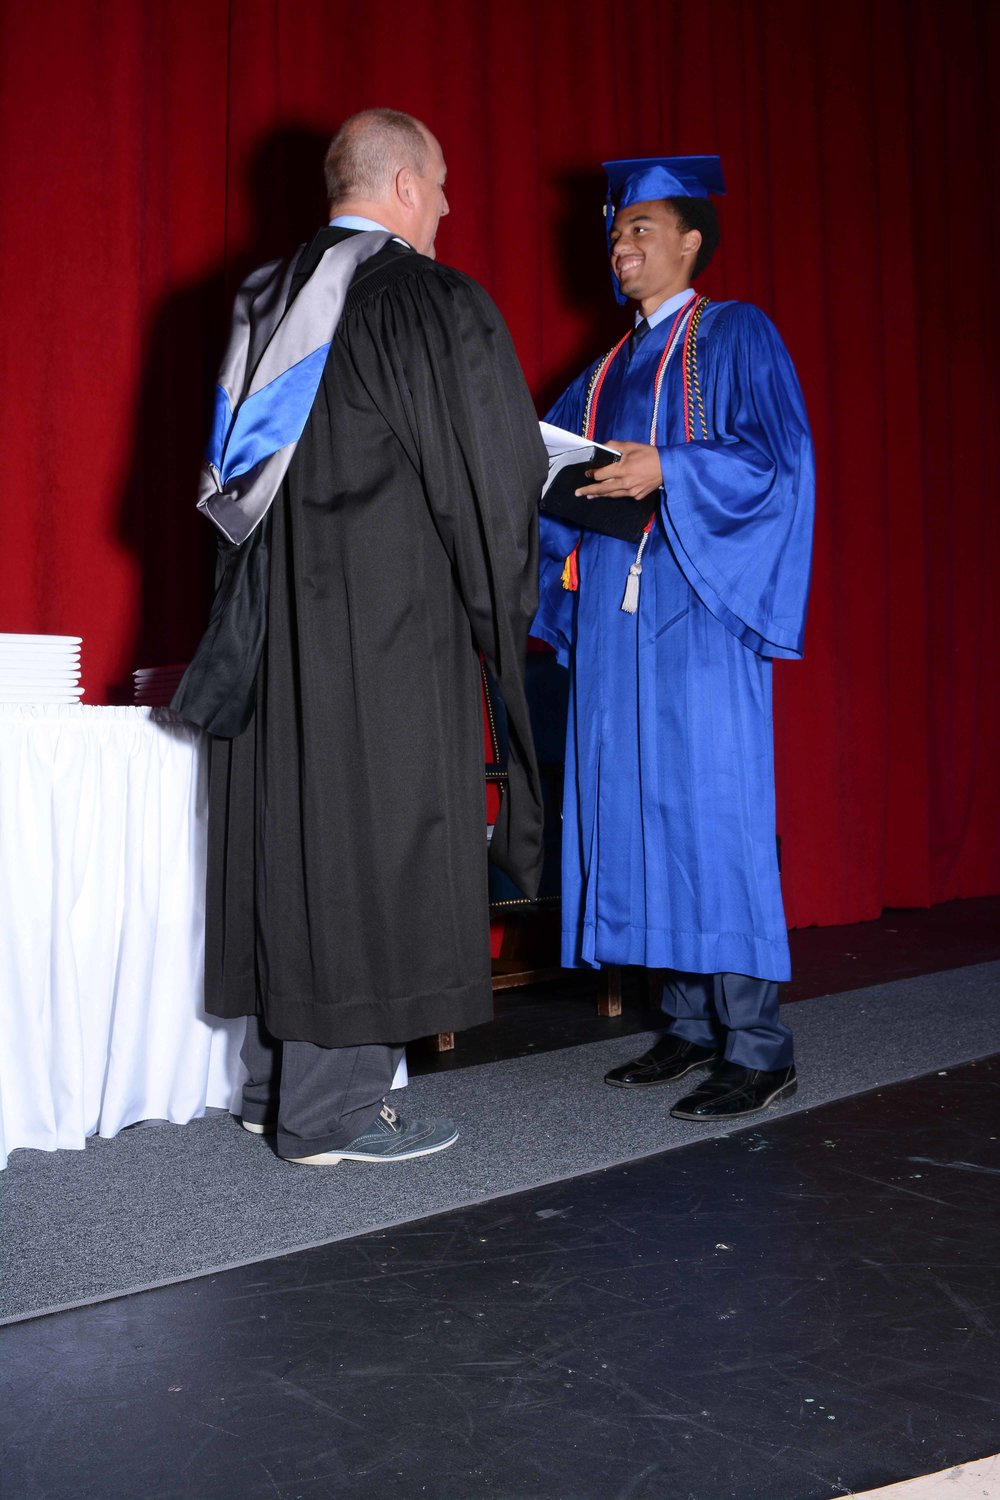 May14 Commencement149.jpg